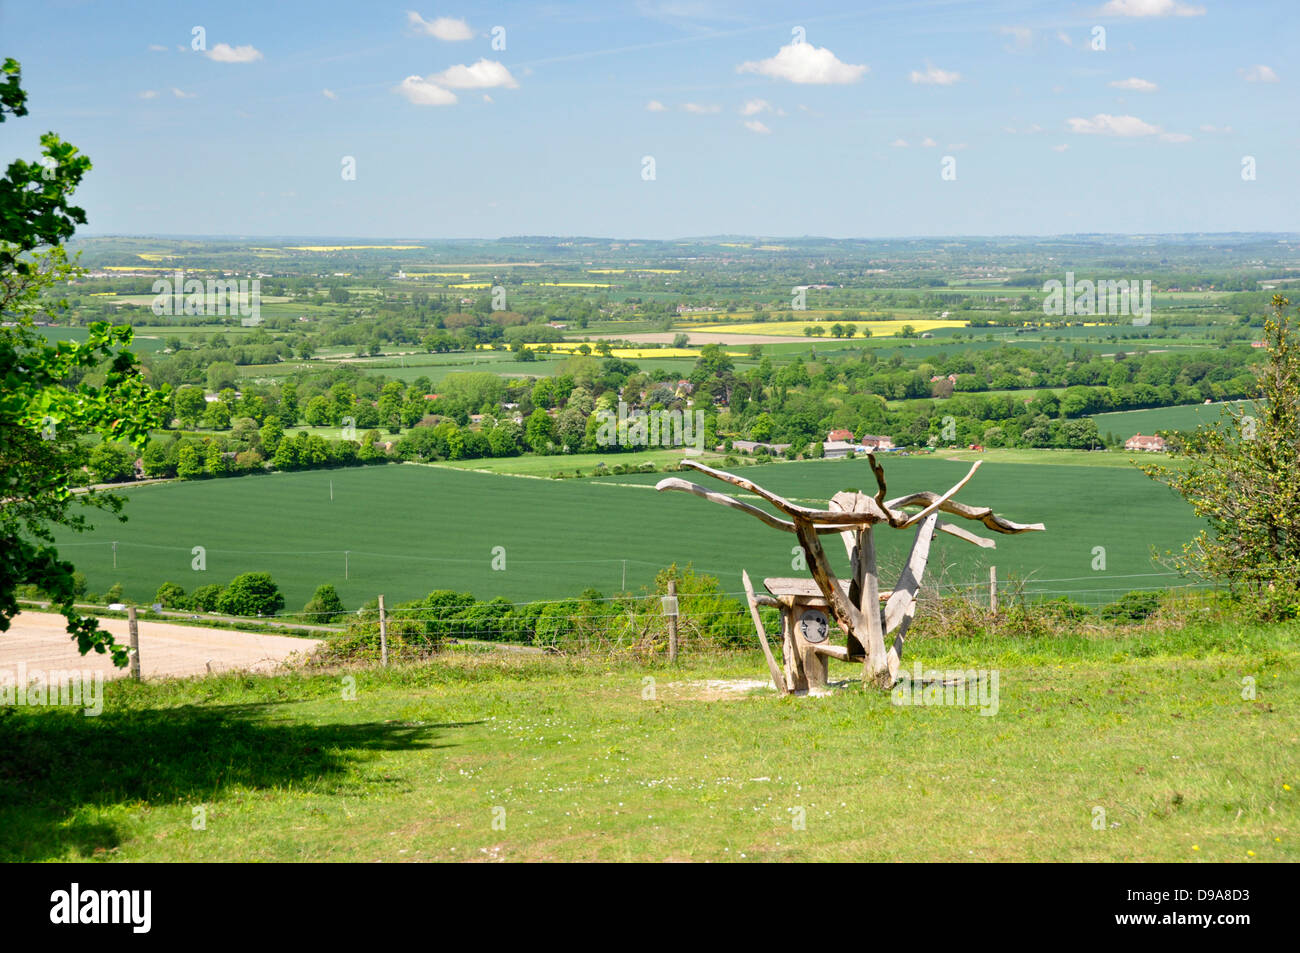 Oxon - Chiltern Hills - from Beacon HIll - landscape with modern sculpture - overlooking countryside + Aston Rowant - Stock Image